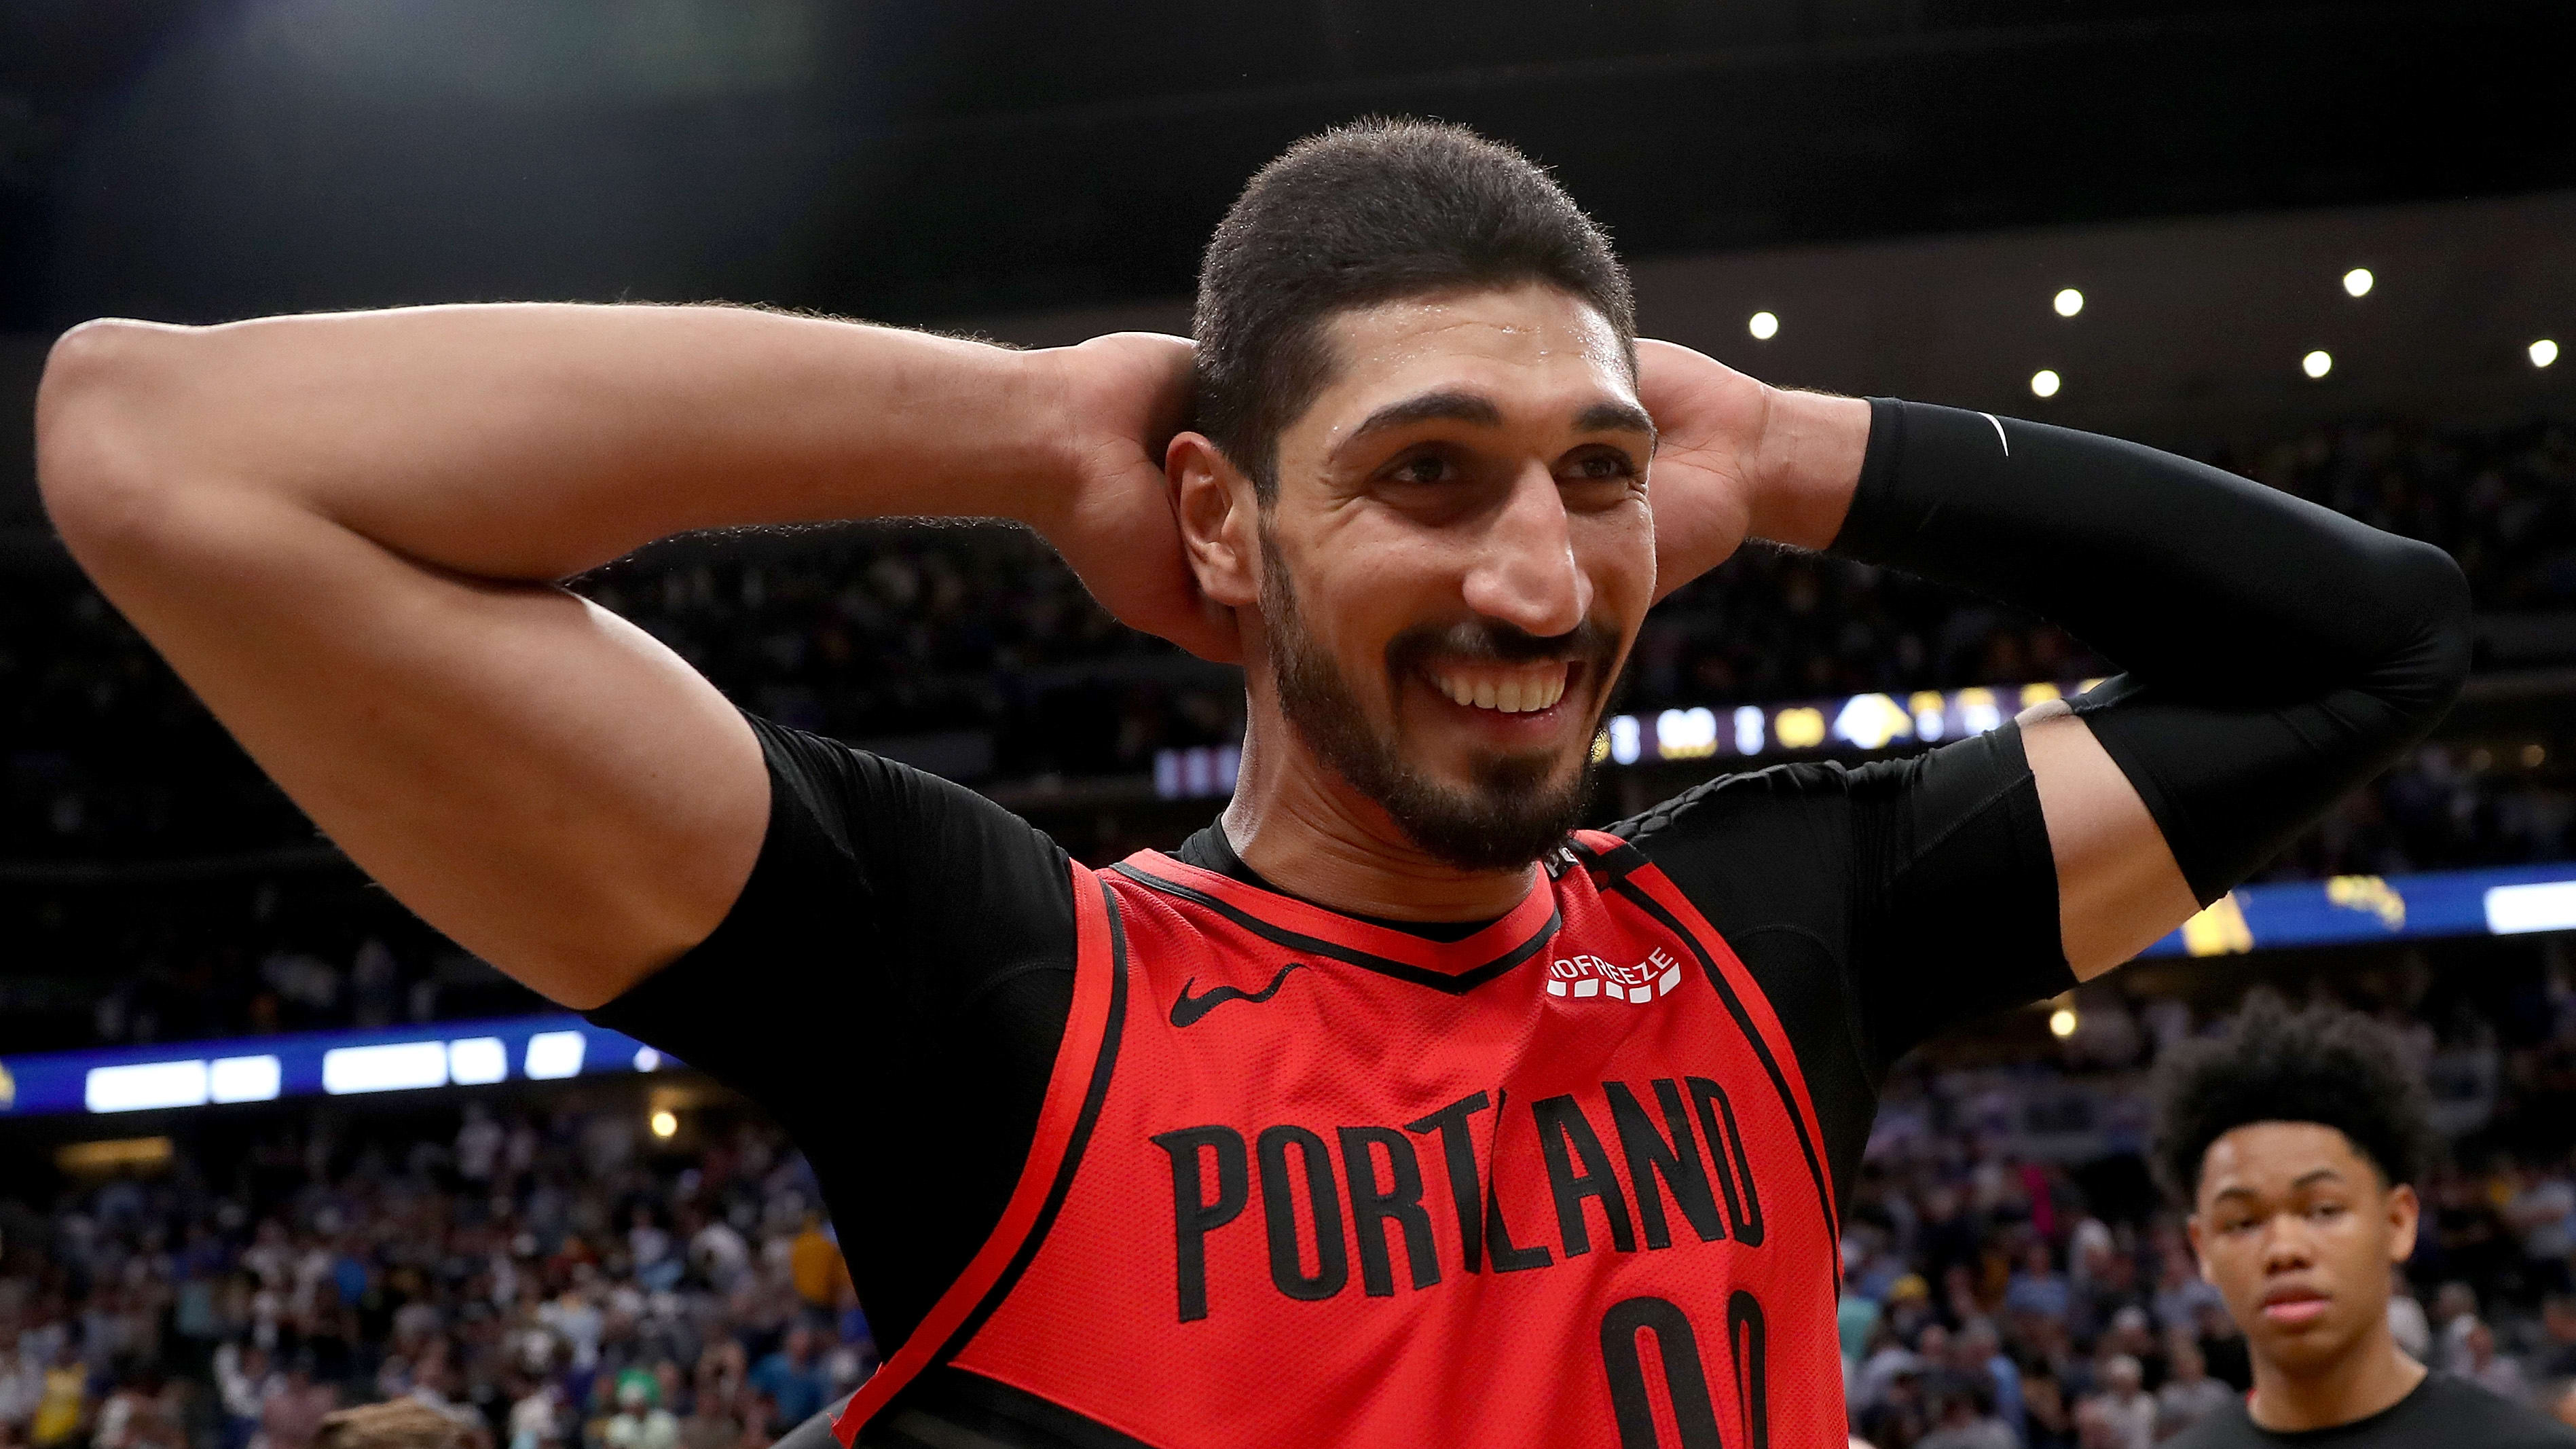 DENVER, COLORADO - MAY 12: Enes Kanter #00 of the Portland Trail Blazers celebrates their win against the Denver Nuggetts during Game Seven of the Western Conference Semi-Finals of the 2019 NBA Playoffs at the Pepsi Center on May 12, 2019 in Denver, Colorado. NOTE TO USER: User expressly acknowledges and agrees that, by downloading and or using this photograph, User is consenting to the terms and conditions of the Getty Images License Agreement. (Photo by Matthew Stockman/Getty Images)